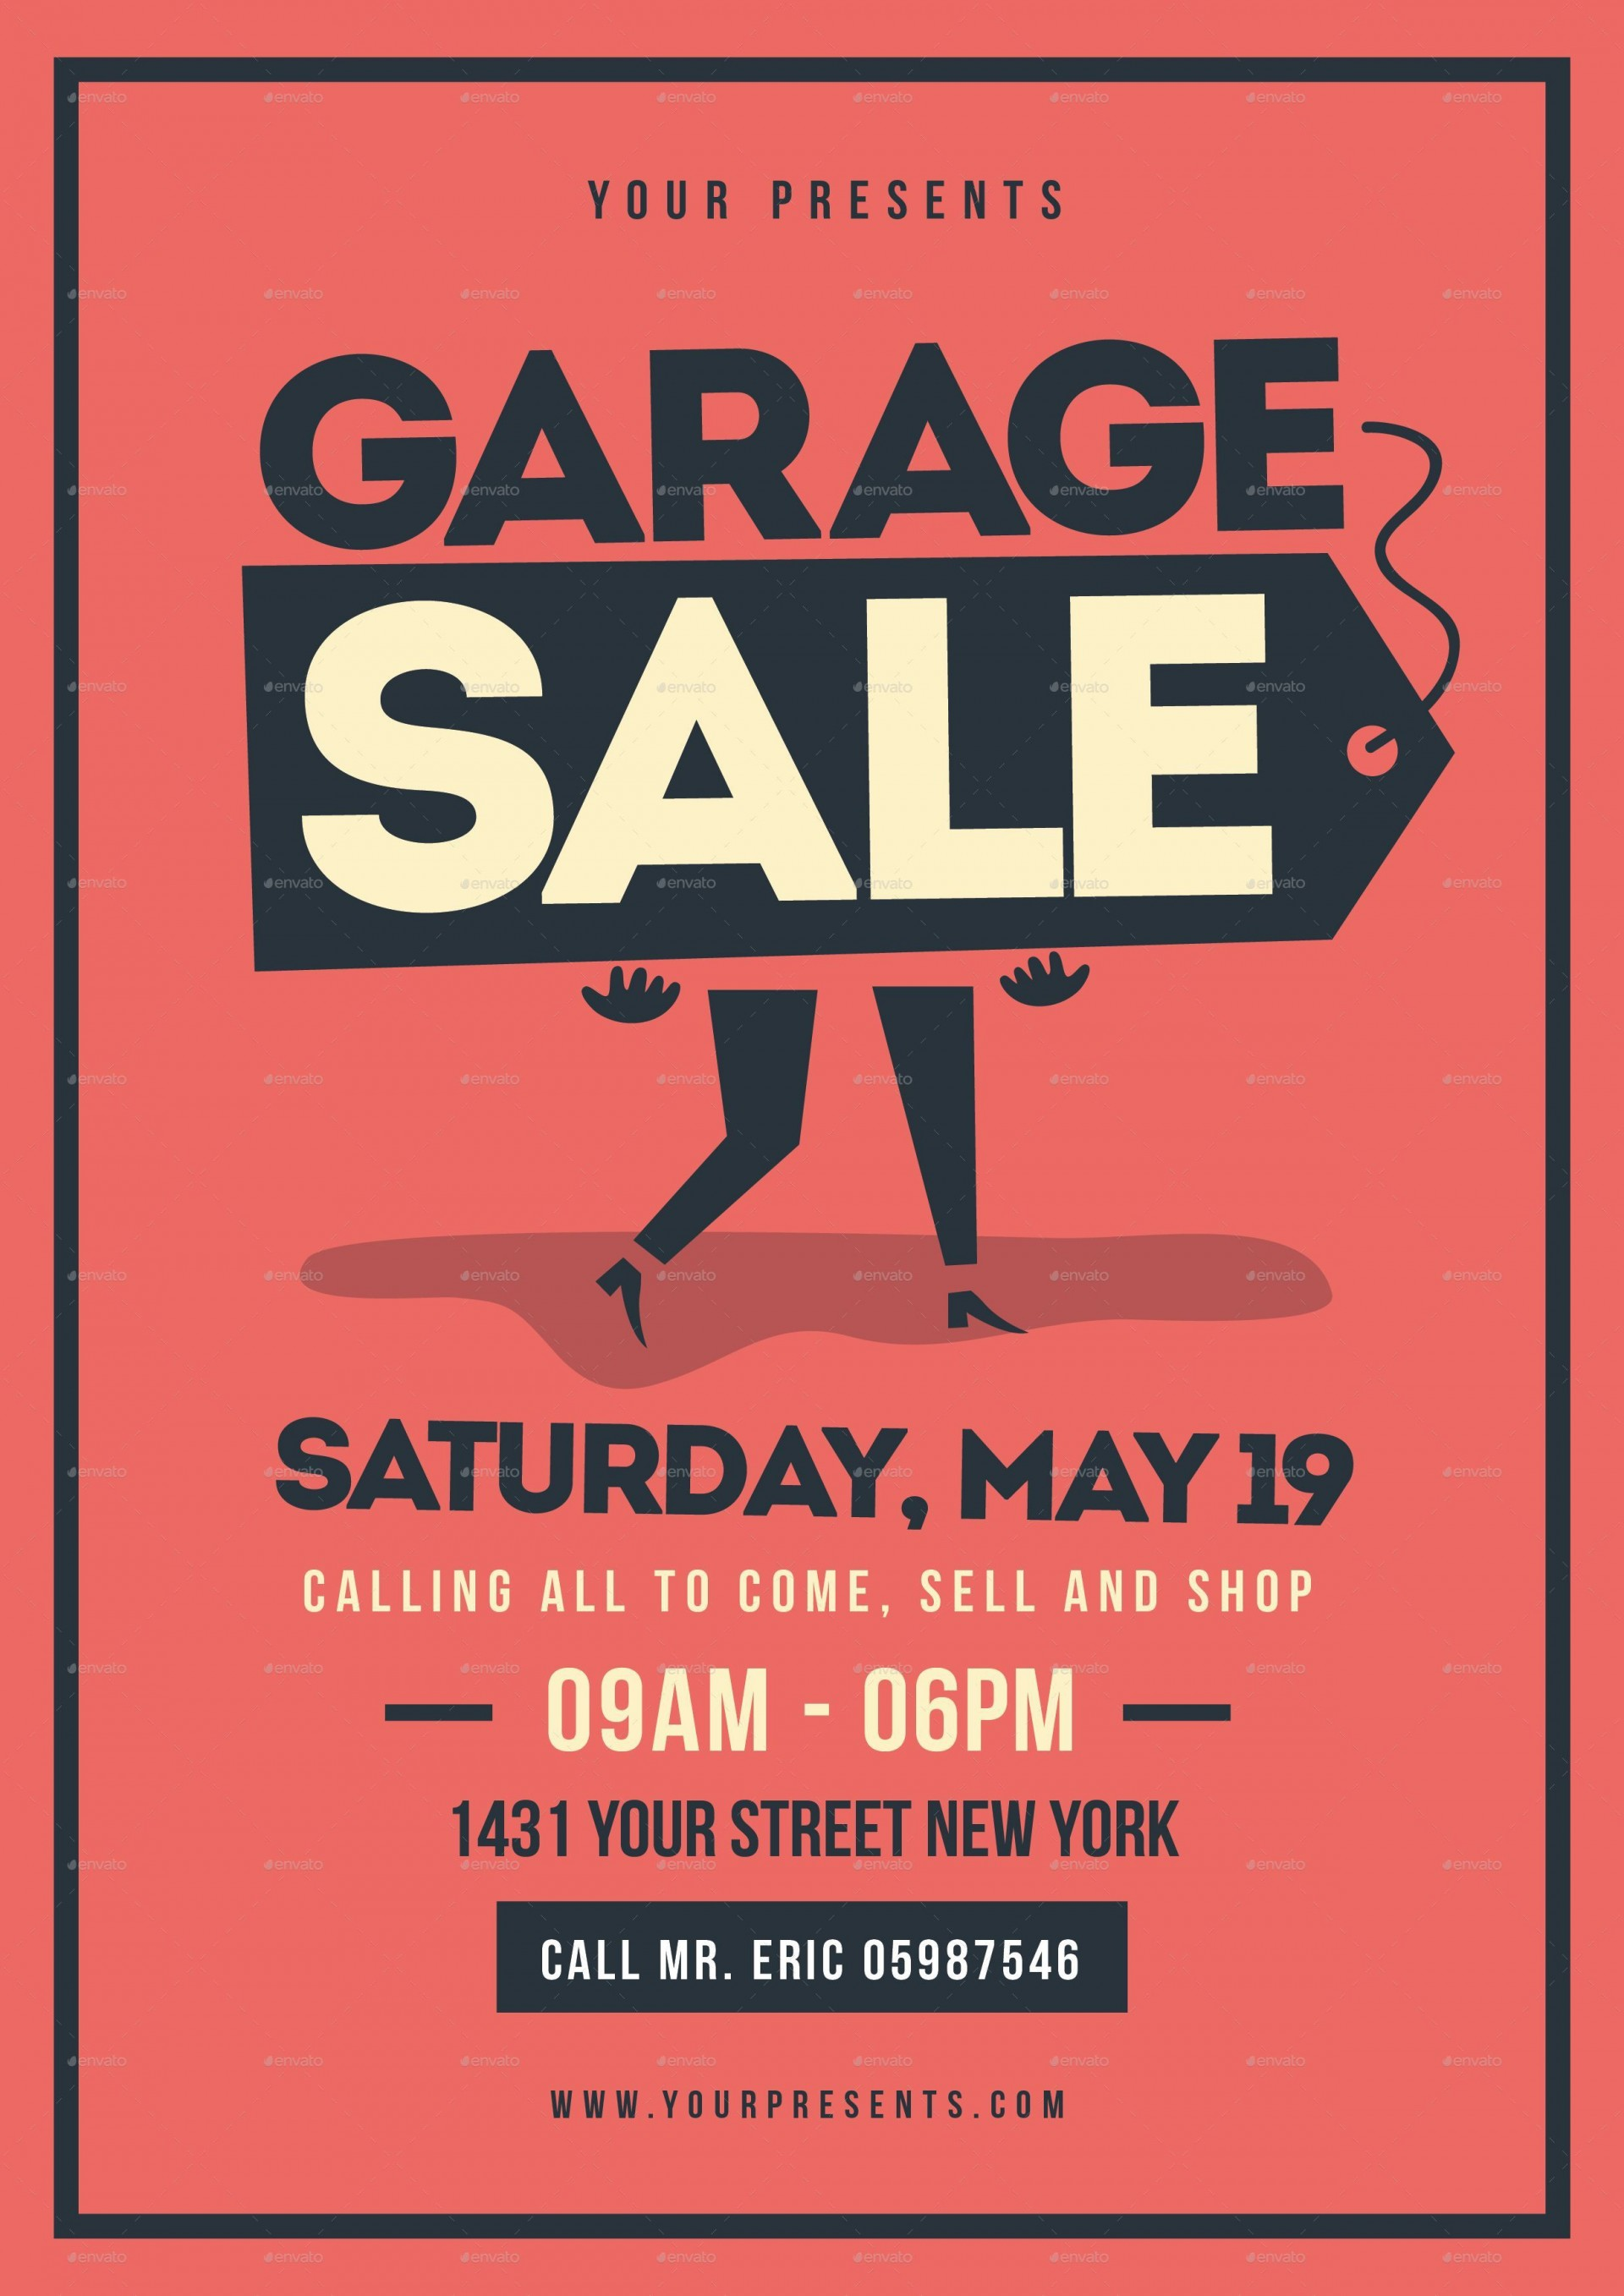 003 Stupendou Garage Sale Sign Template Image  Flyer Microsoft Word Community Yard Free Rummage1920